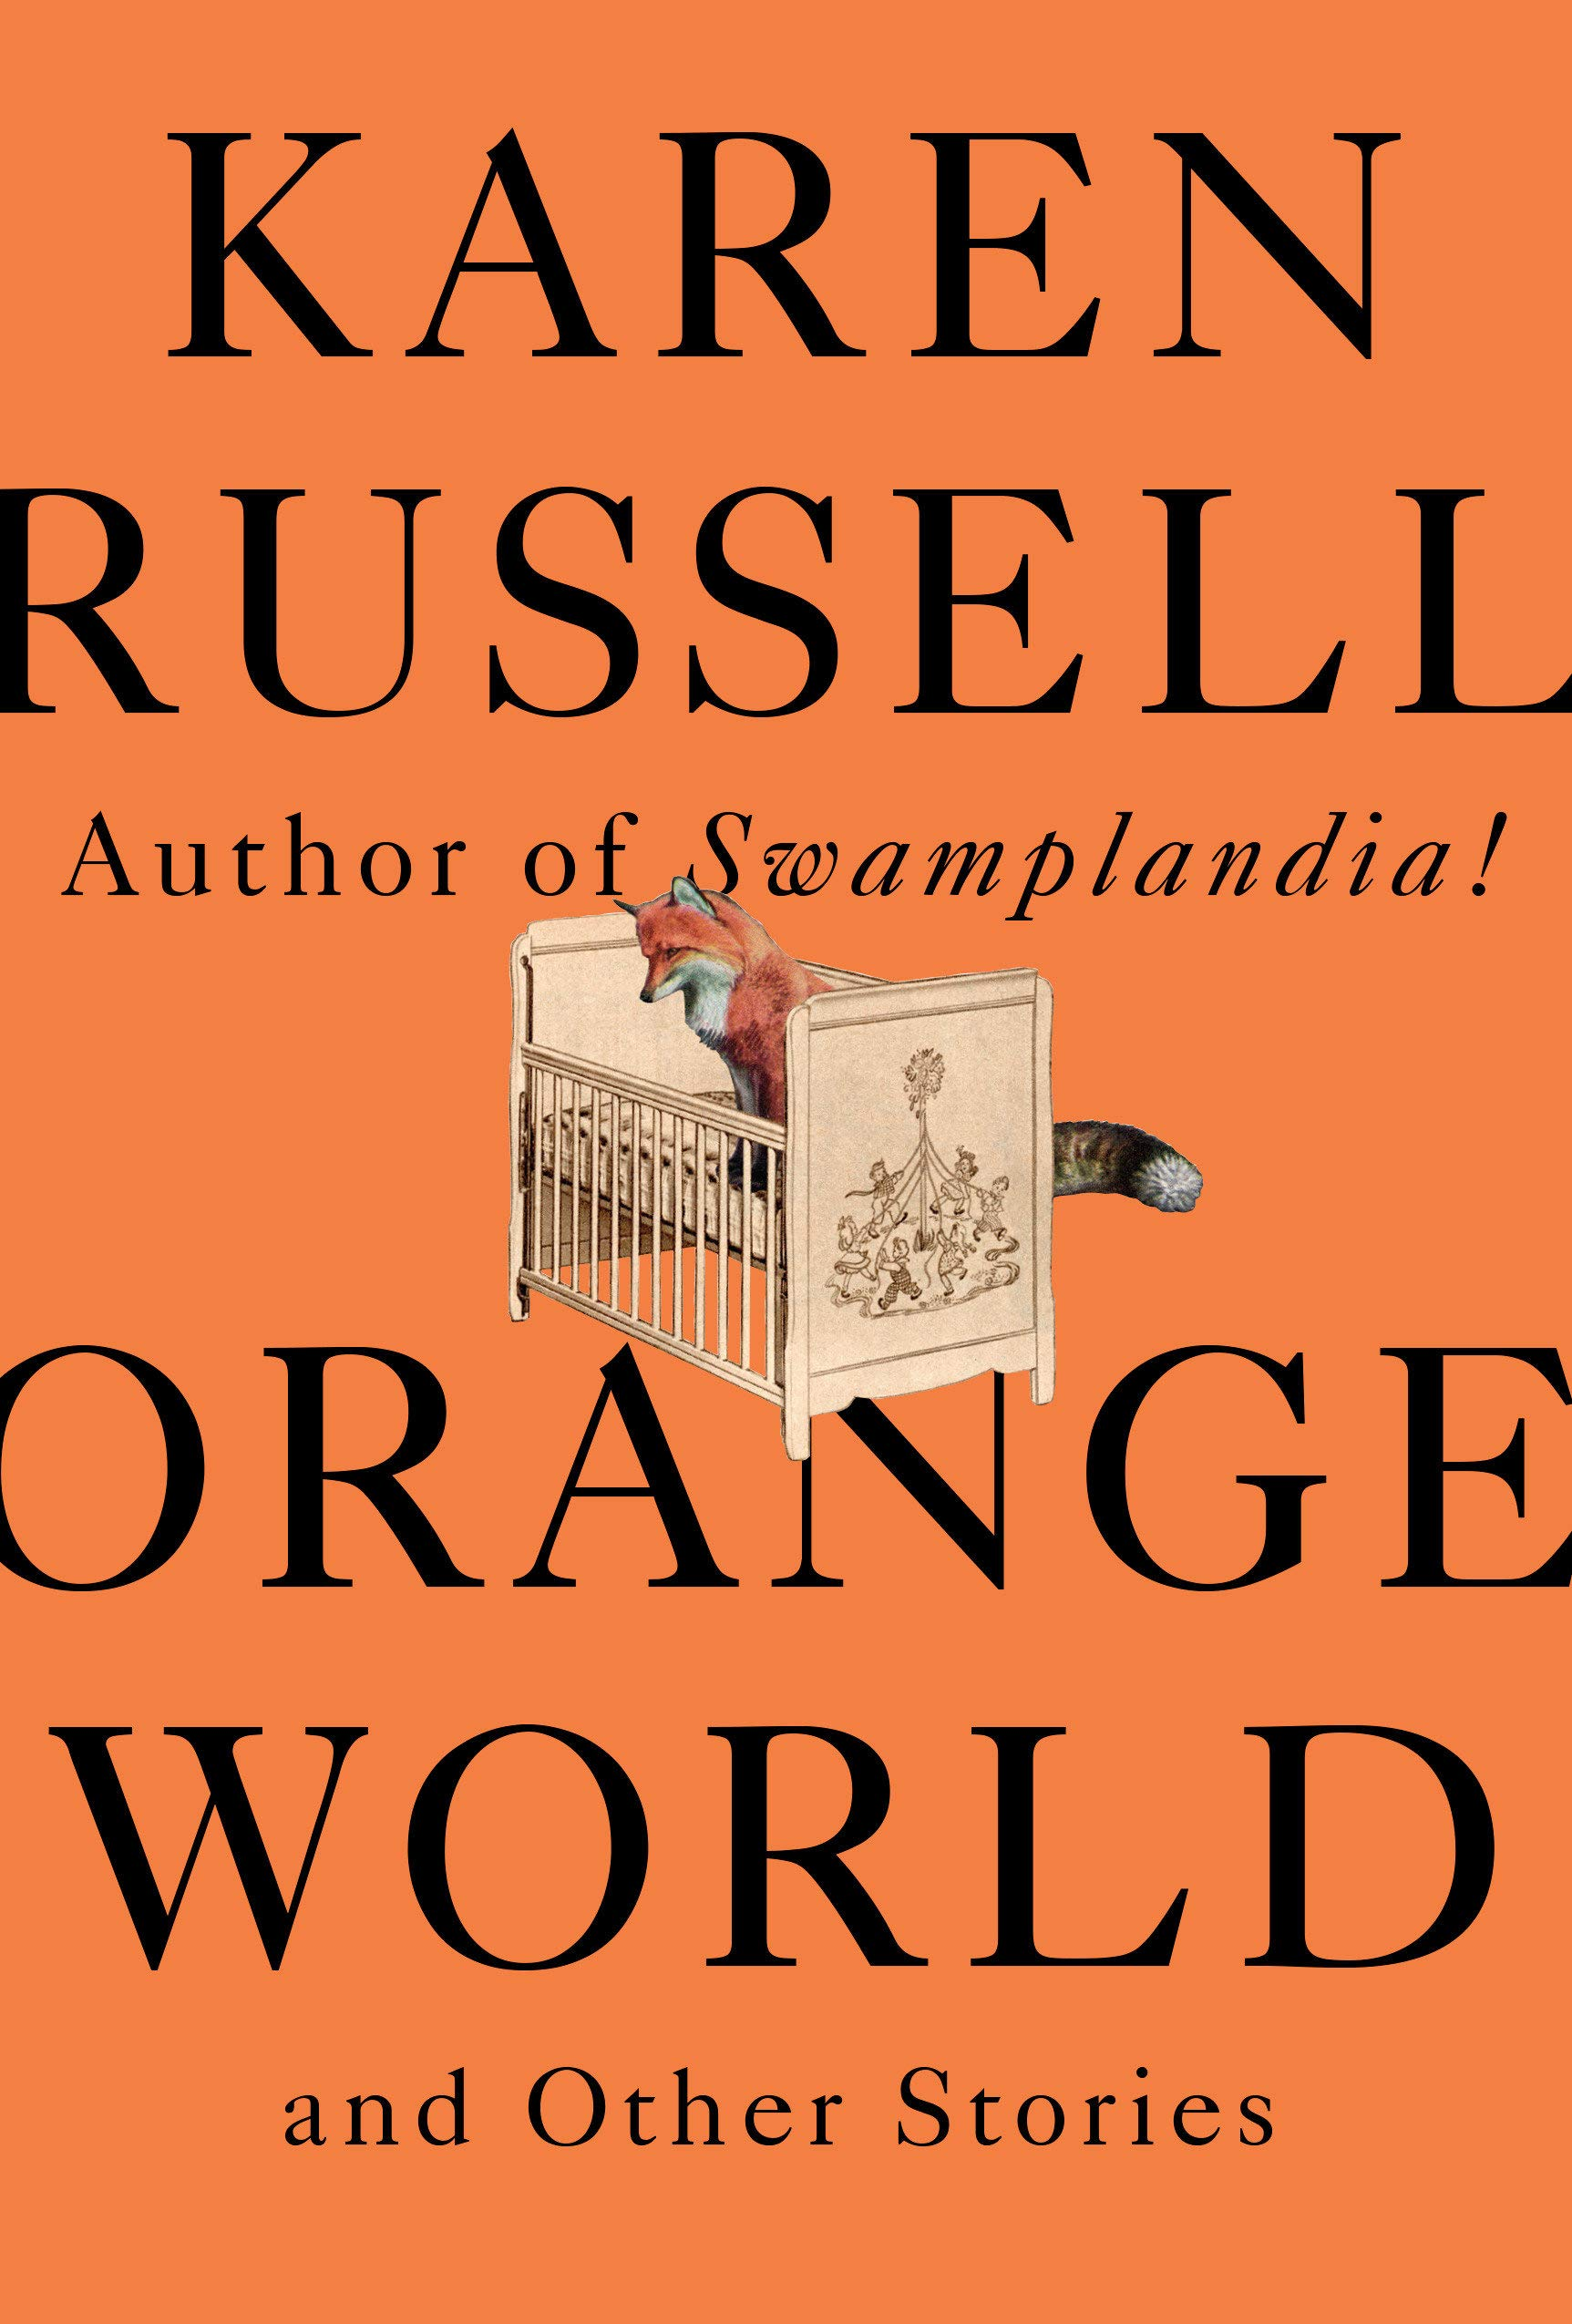 Image result for orange world